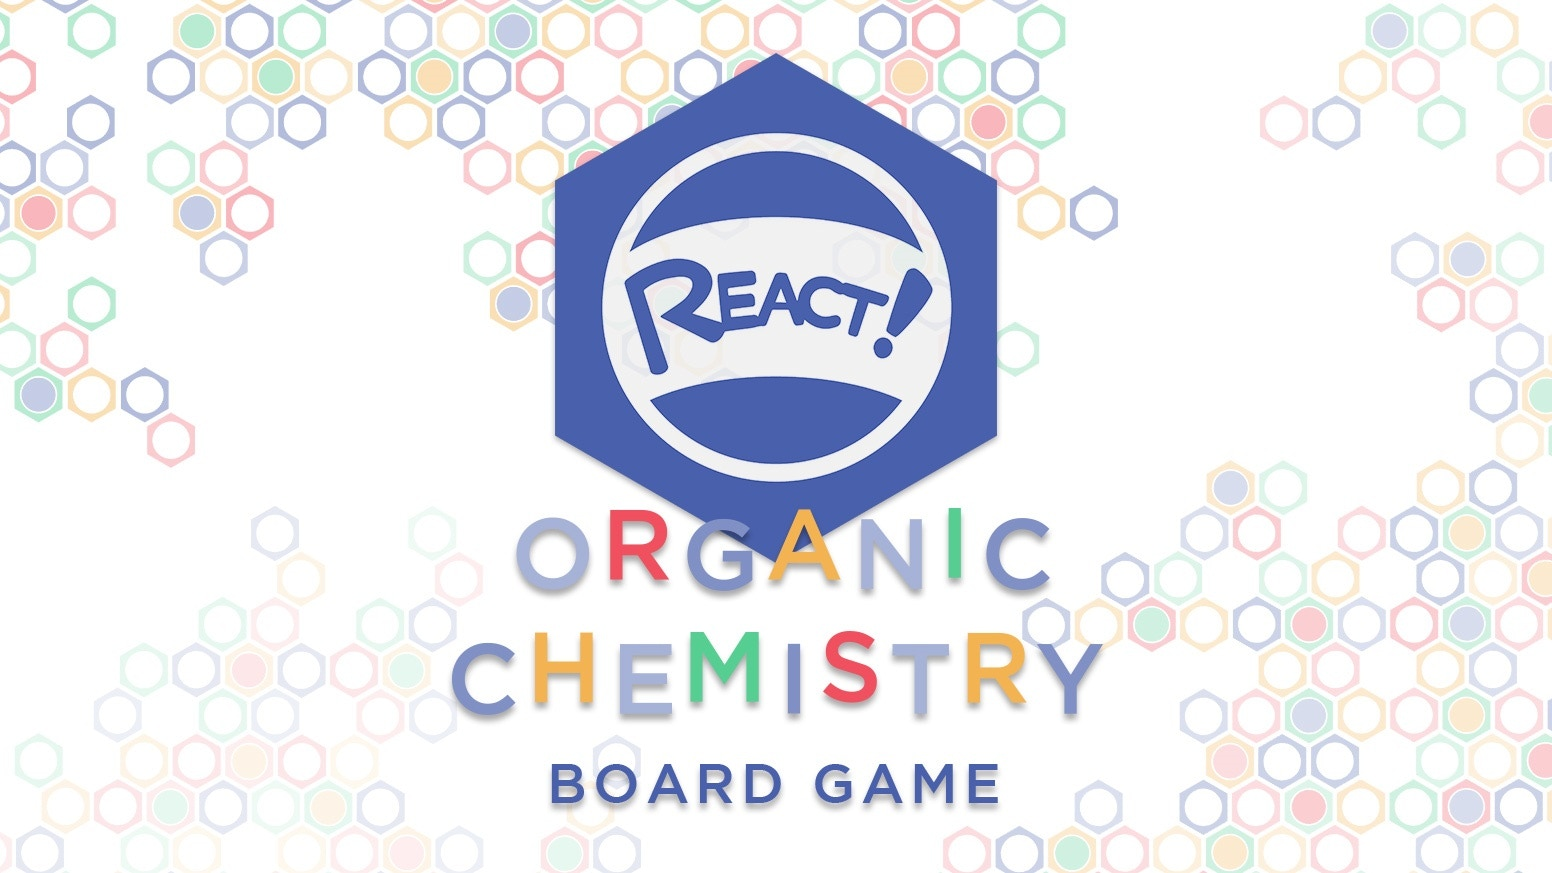 React! - The Organic Chemistry Board Game by React